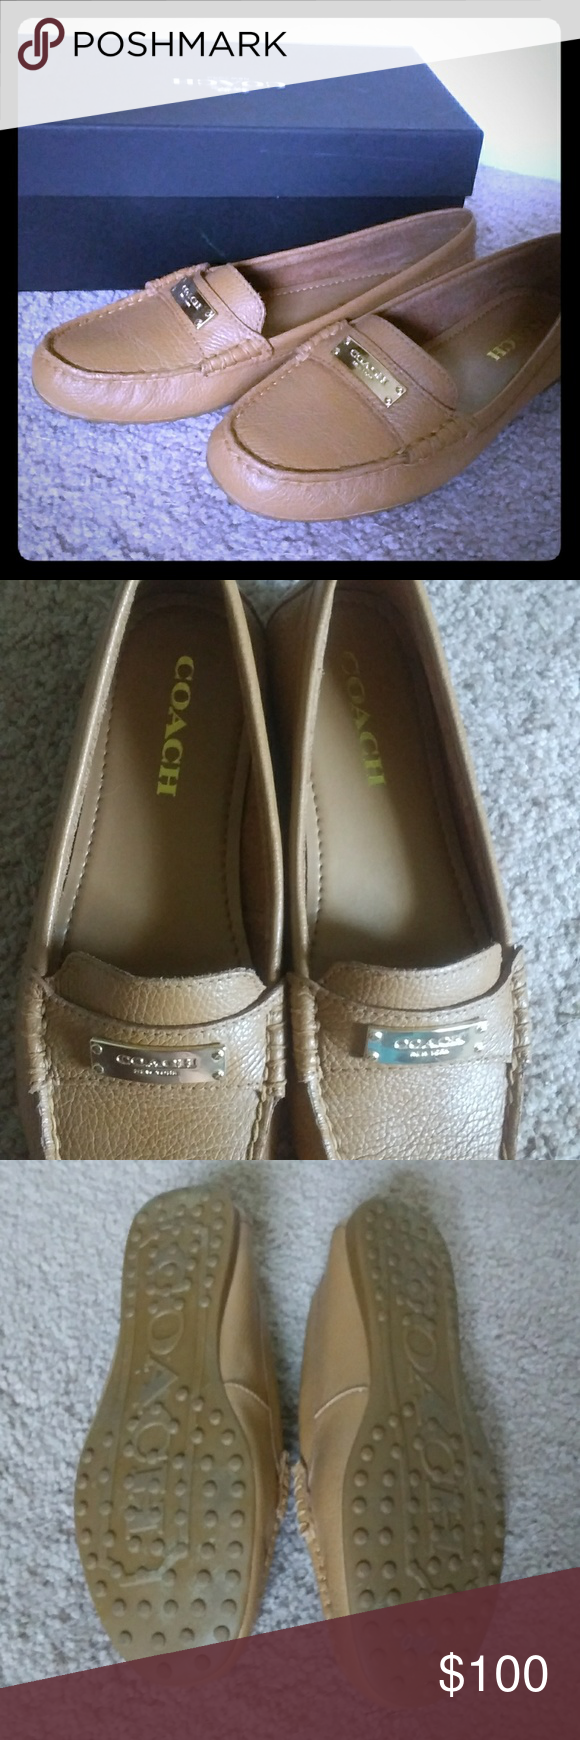 58631a2e64e Coach Fredrica Loafers These very mustard colored gently worn loafers (worn  3x) are comfortable